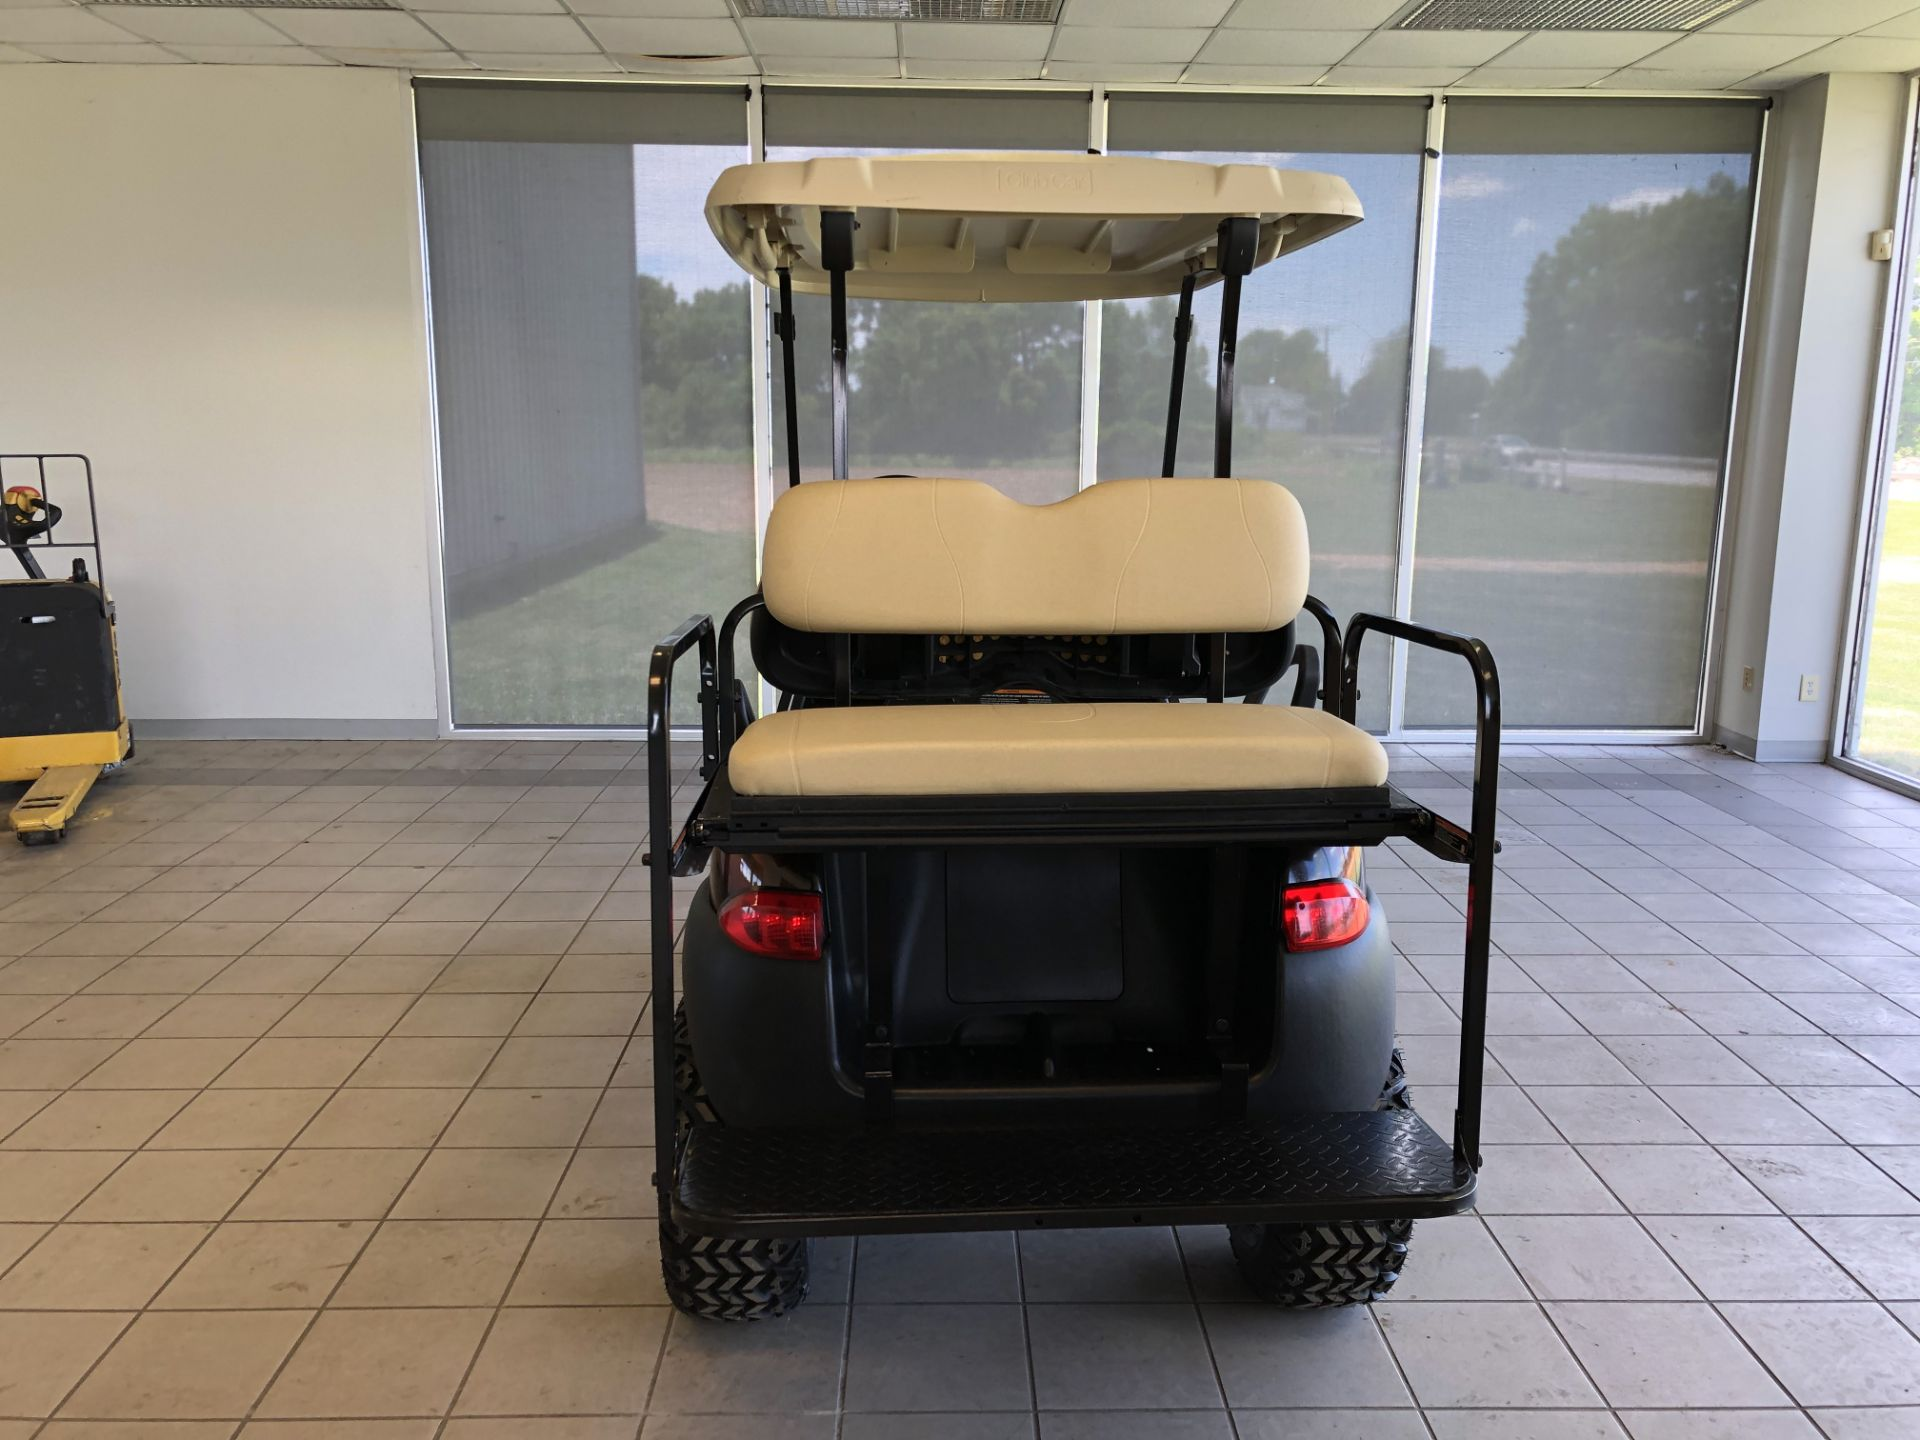 Lot 28 - 2014 CLUB CAR PRECEDENT ELECTRIC GOLF CART, WITH 48 VOLT CHARGER, 4-PASSENGER FOLD DOWN SEAT, LIFT